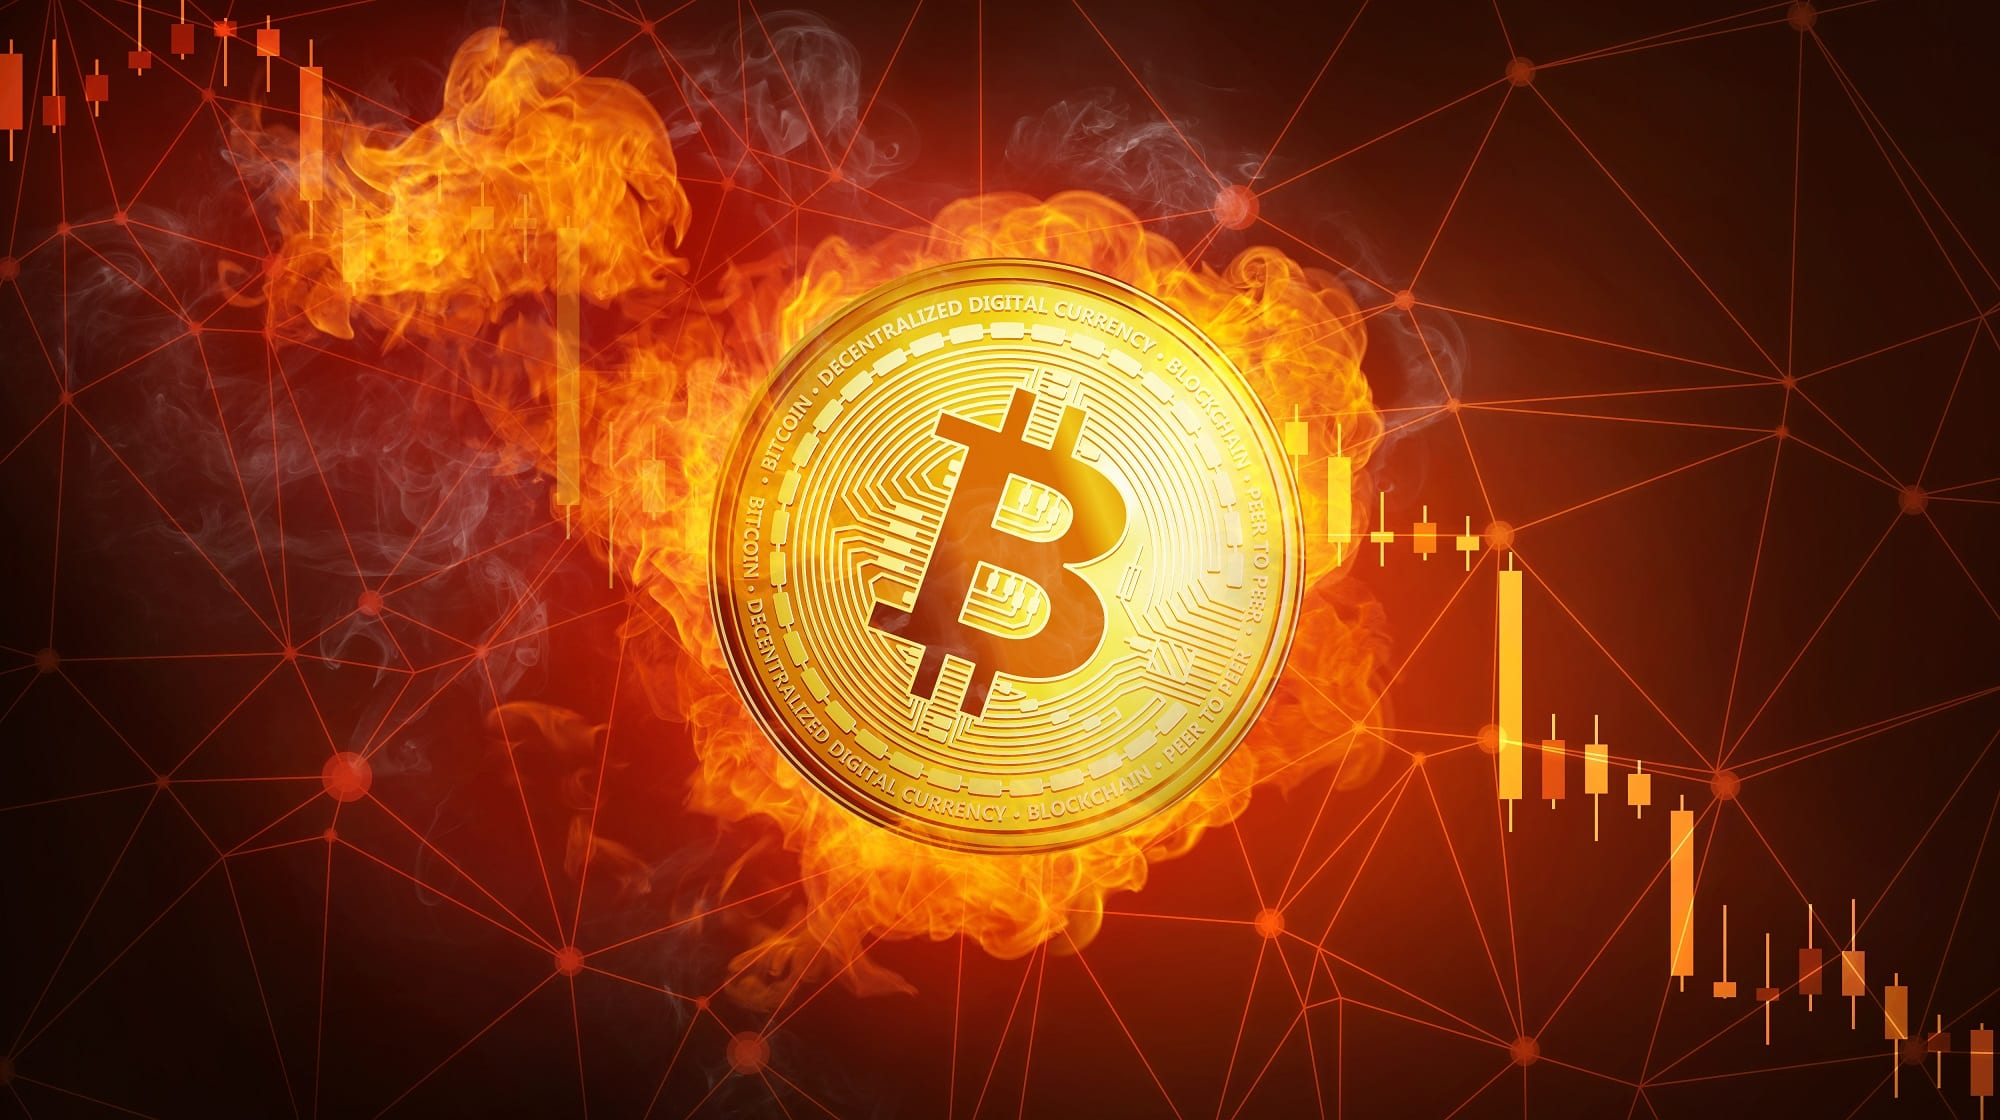 1537378713408 shutterstock 795140185 - Bitcoin Bull Run Incoming: Now Is The Best Time To Buy BTC, Says Brian Kelly